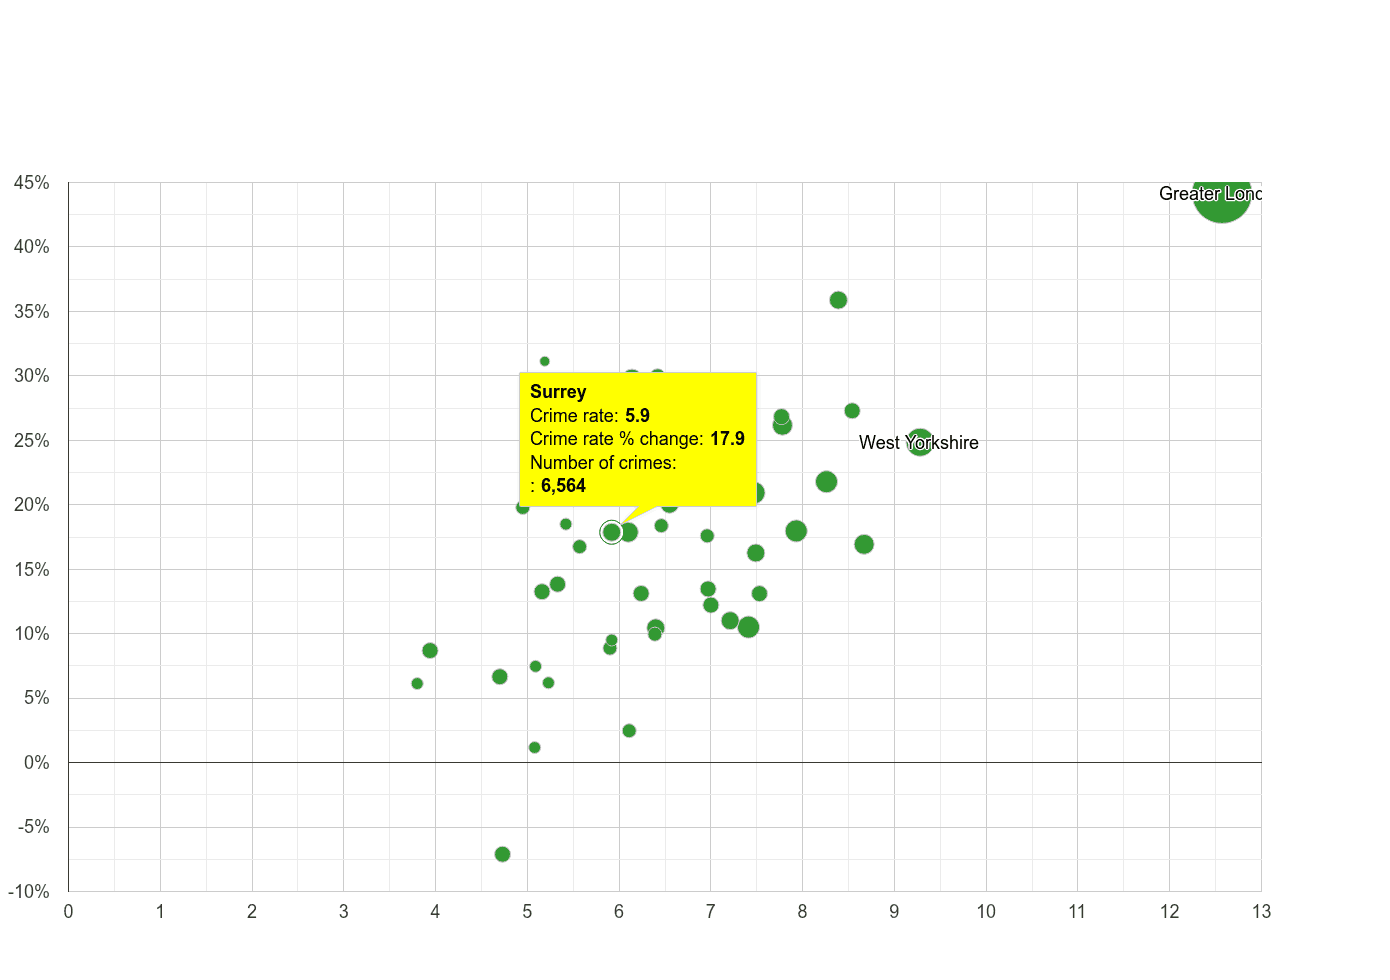 Surrey other theft crime rate compared to other counties